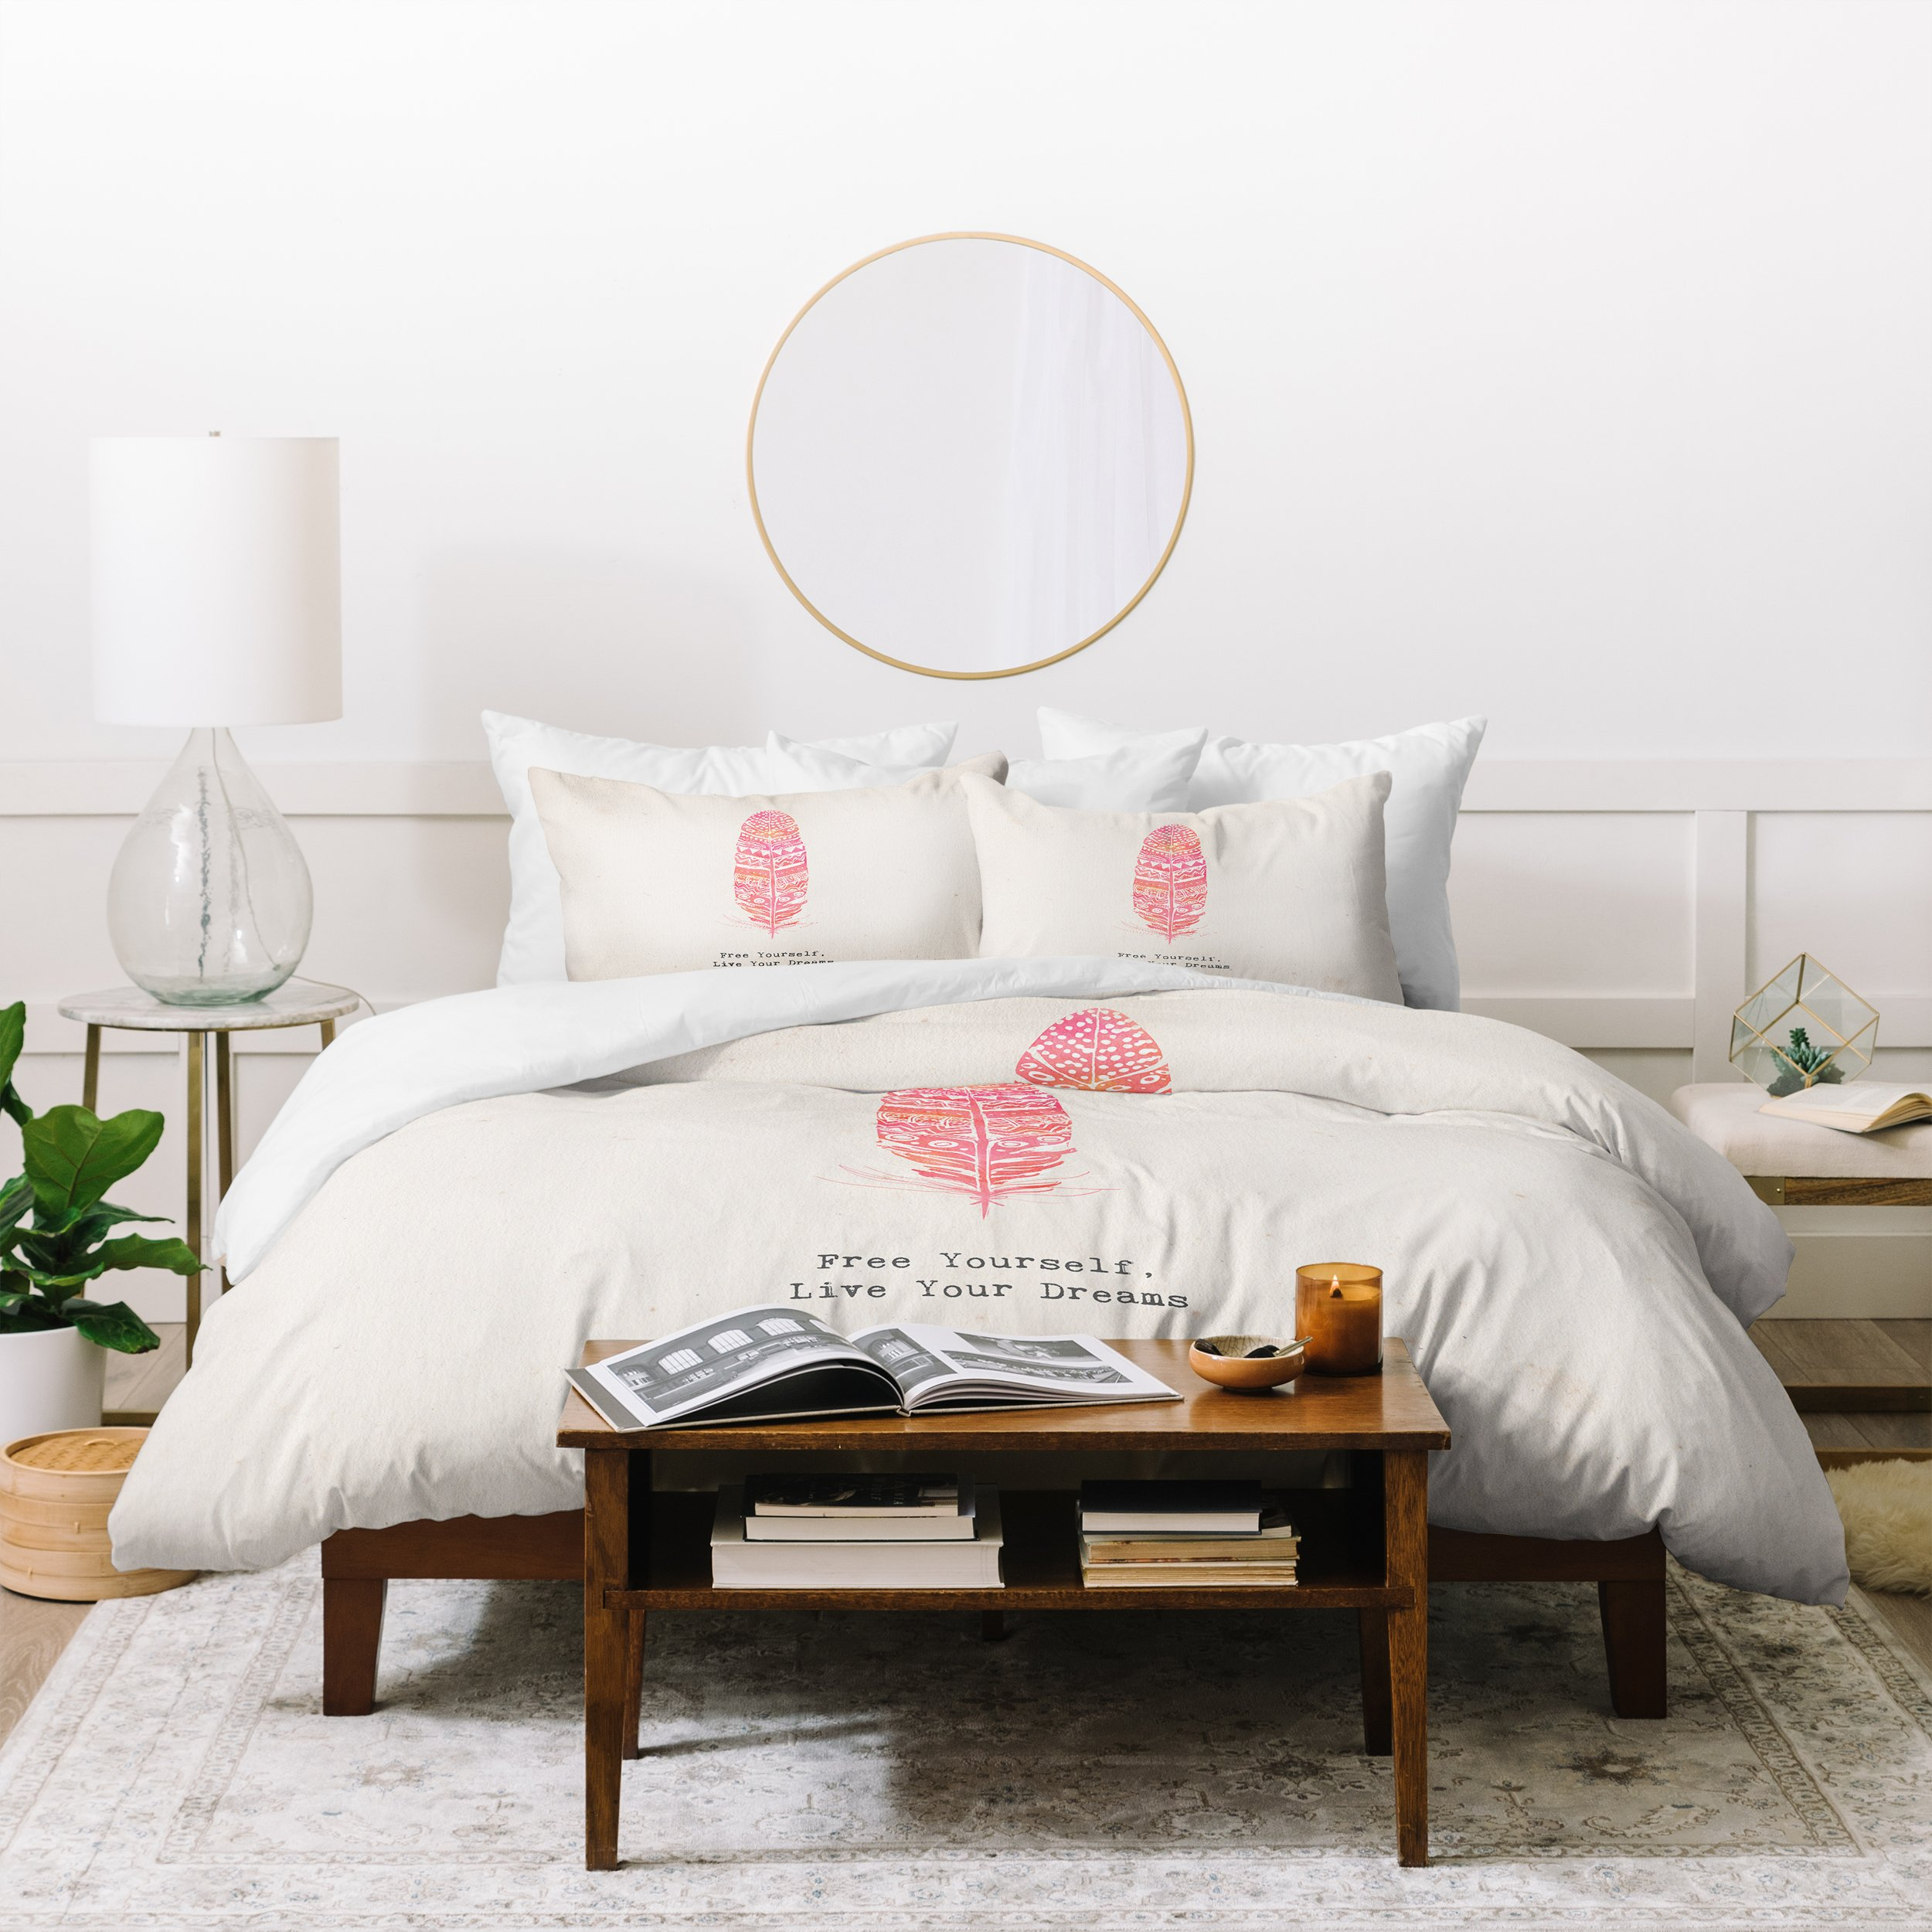 Image of Kangarui Free Yourself Feather Duvet Cover